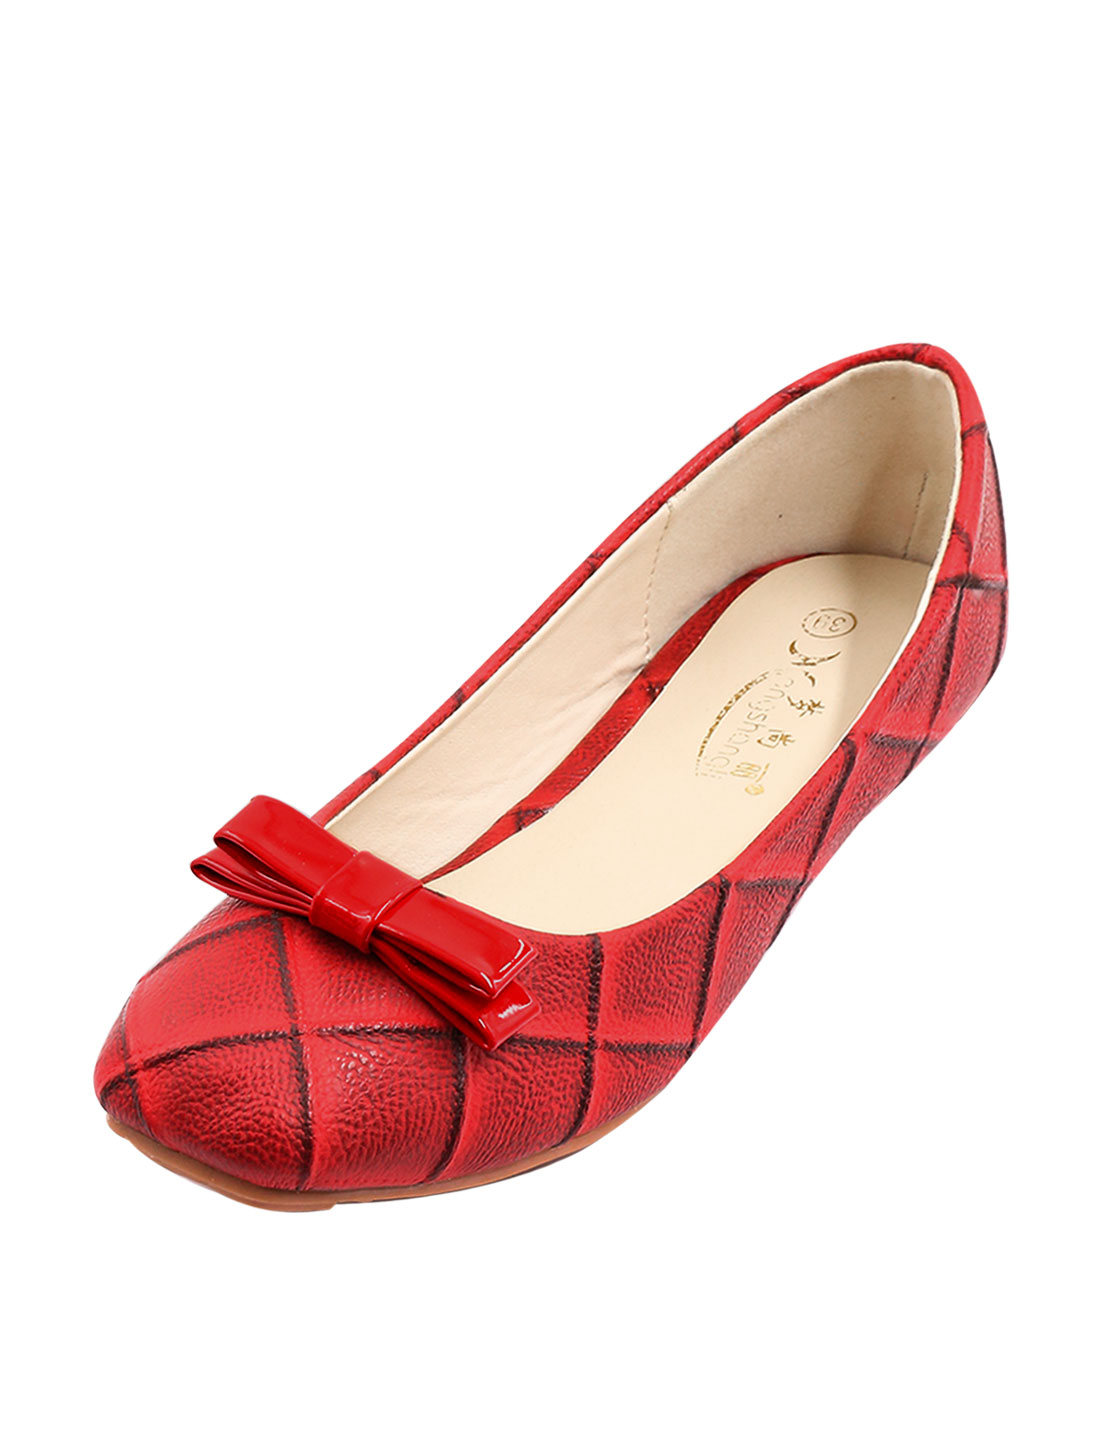 Ladies Square Toe Argyle Pattern Casual Flat Heels Bow Shoes Red US 8.5